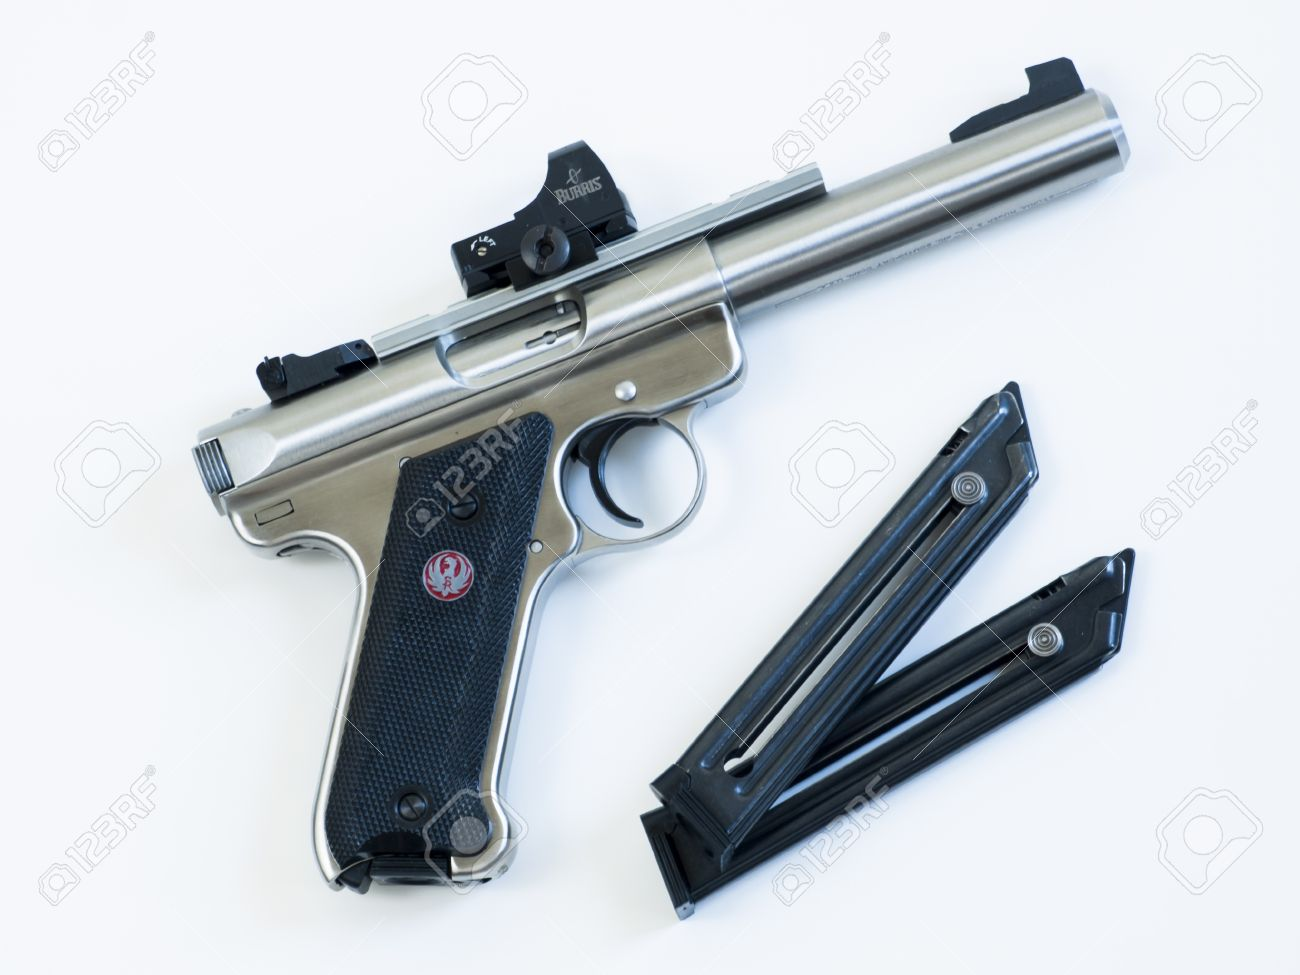 the ruger mk iii is a 22 long rifle semi automatic pistol